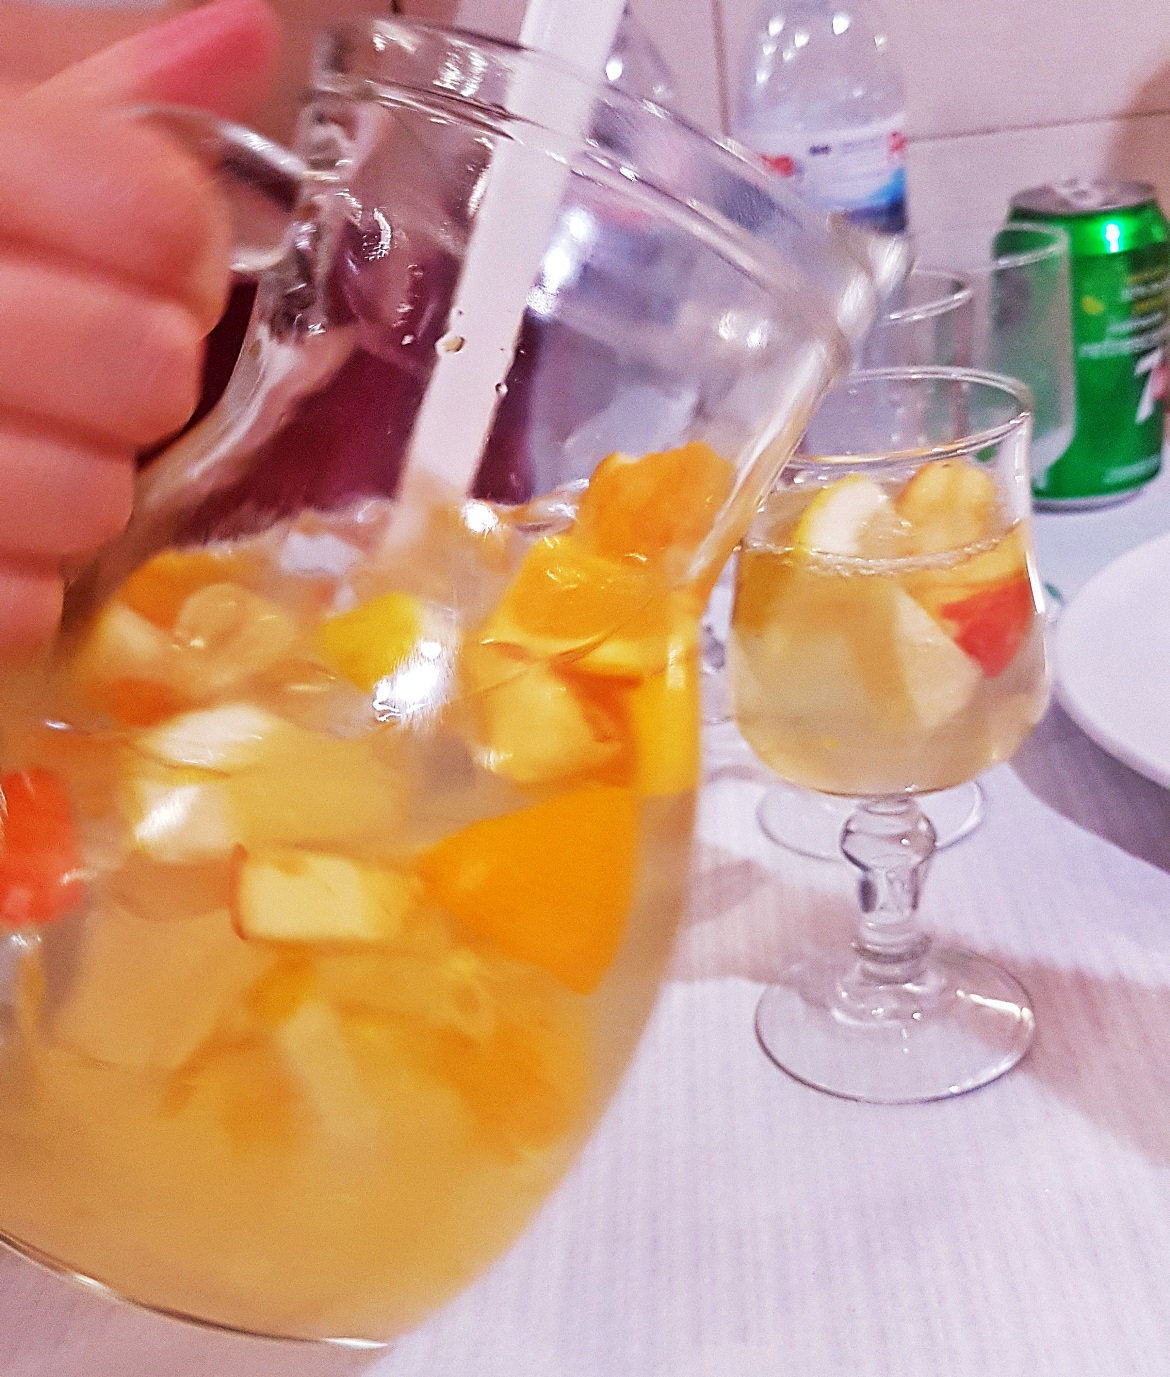 White sangria at Restaurant de Calçada - Food and Drink in Lisbon, review by BeckyBecky Blogs